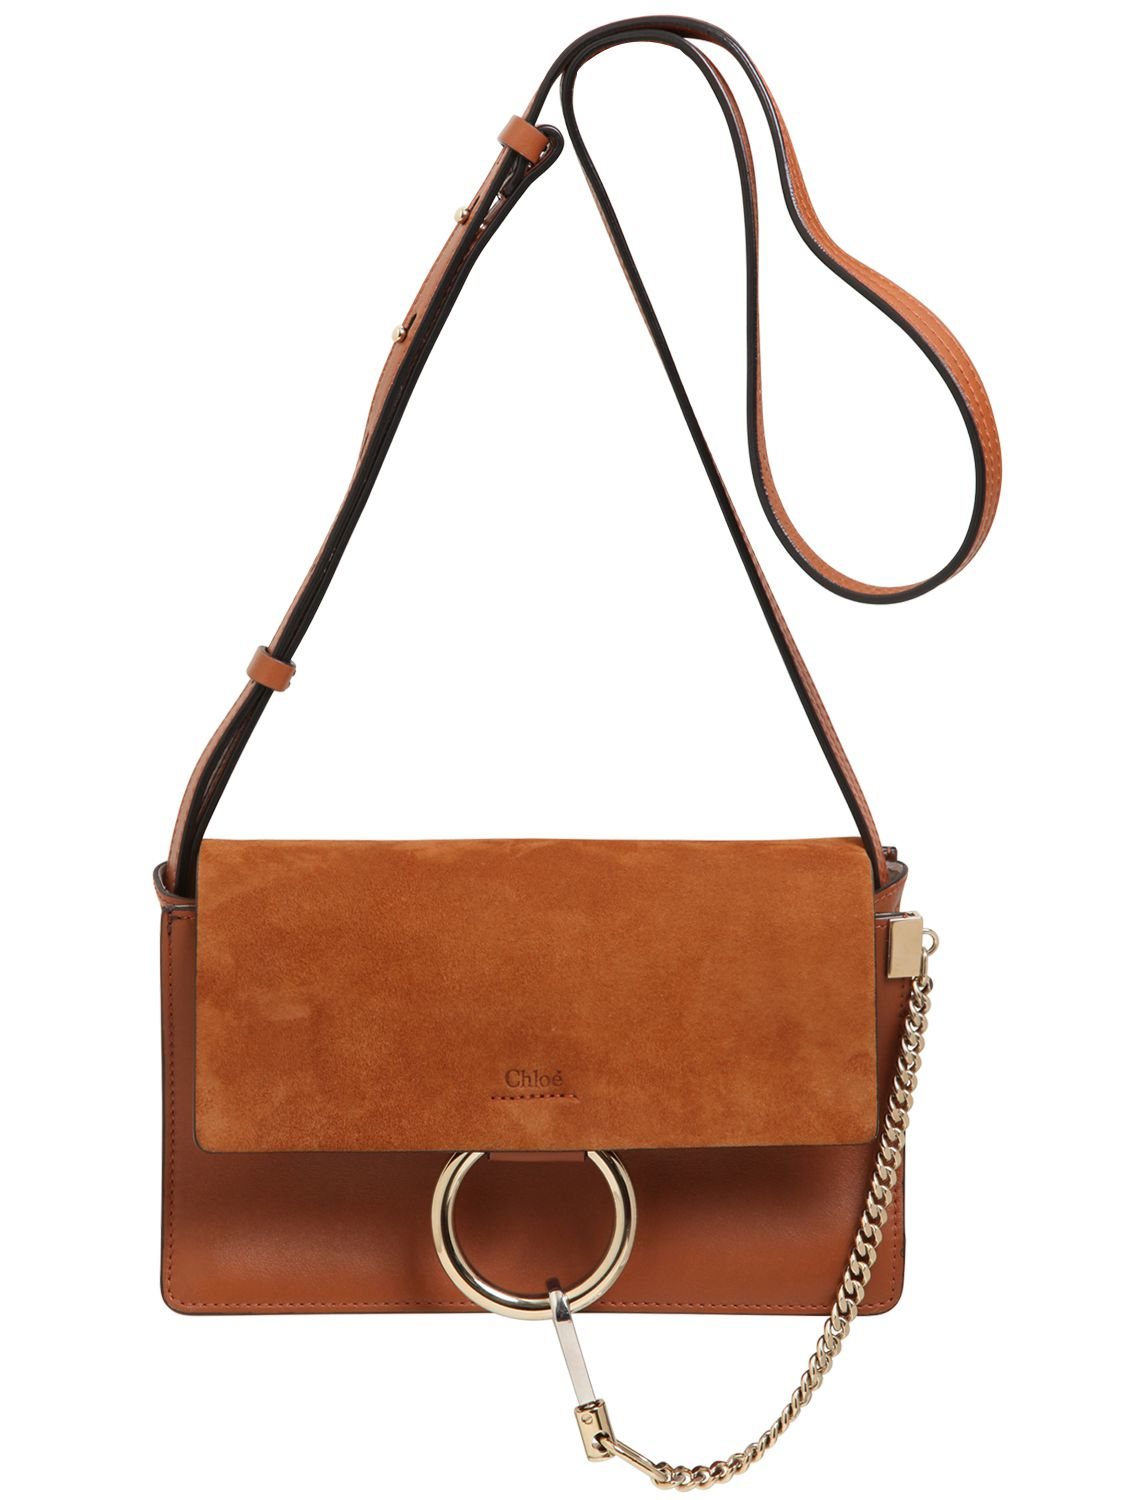 bb02ce0a53d00d Chloé Small Faye Leather & Suede Shoulder Bag in Brown - Lyst